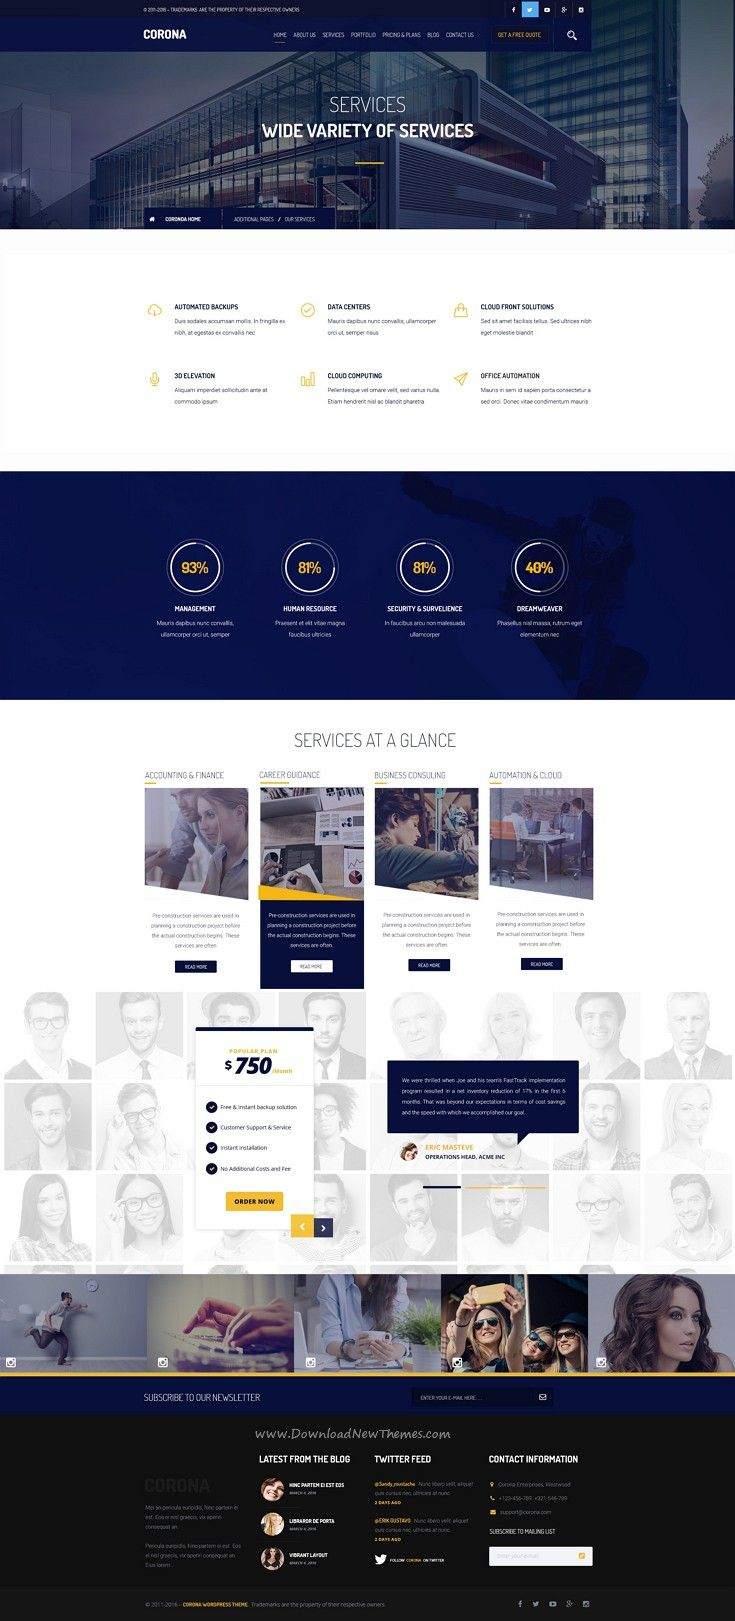 Corona Is Creative And Elegant Design Psd Template For Corporate And Business Website Web Design Tips Web Design Web Template Design